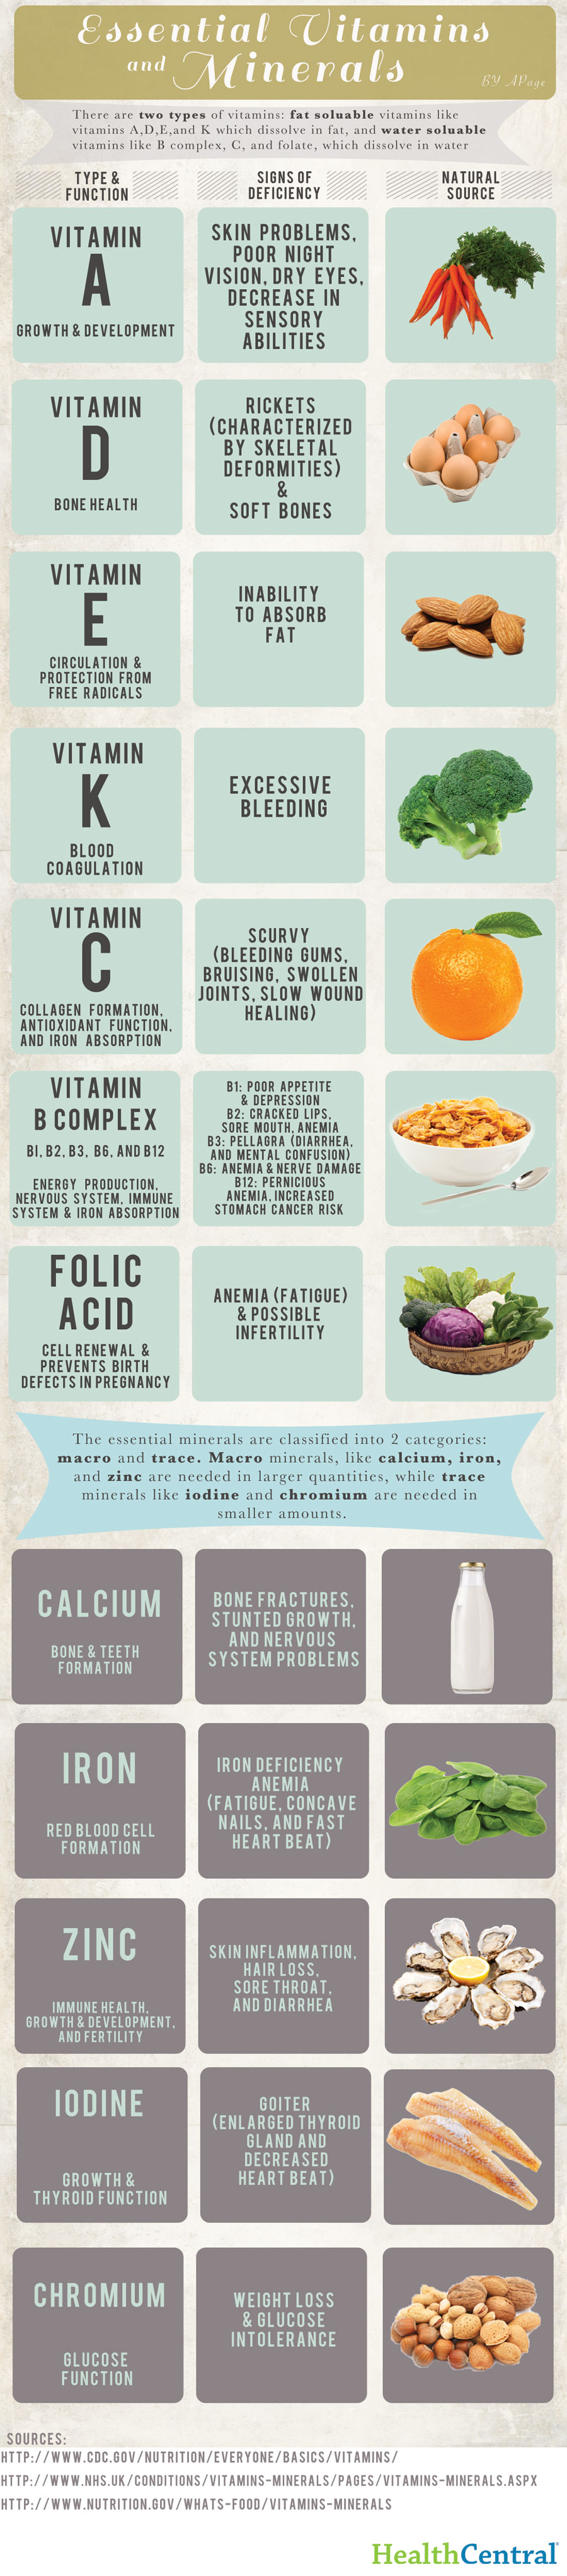 Essential Vitamins And Minerals Map Infographic